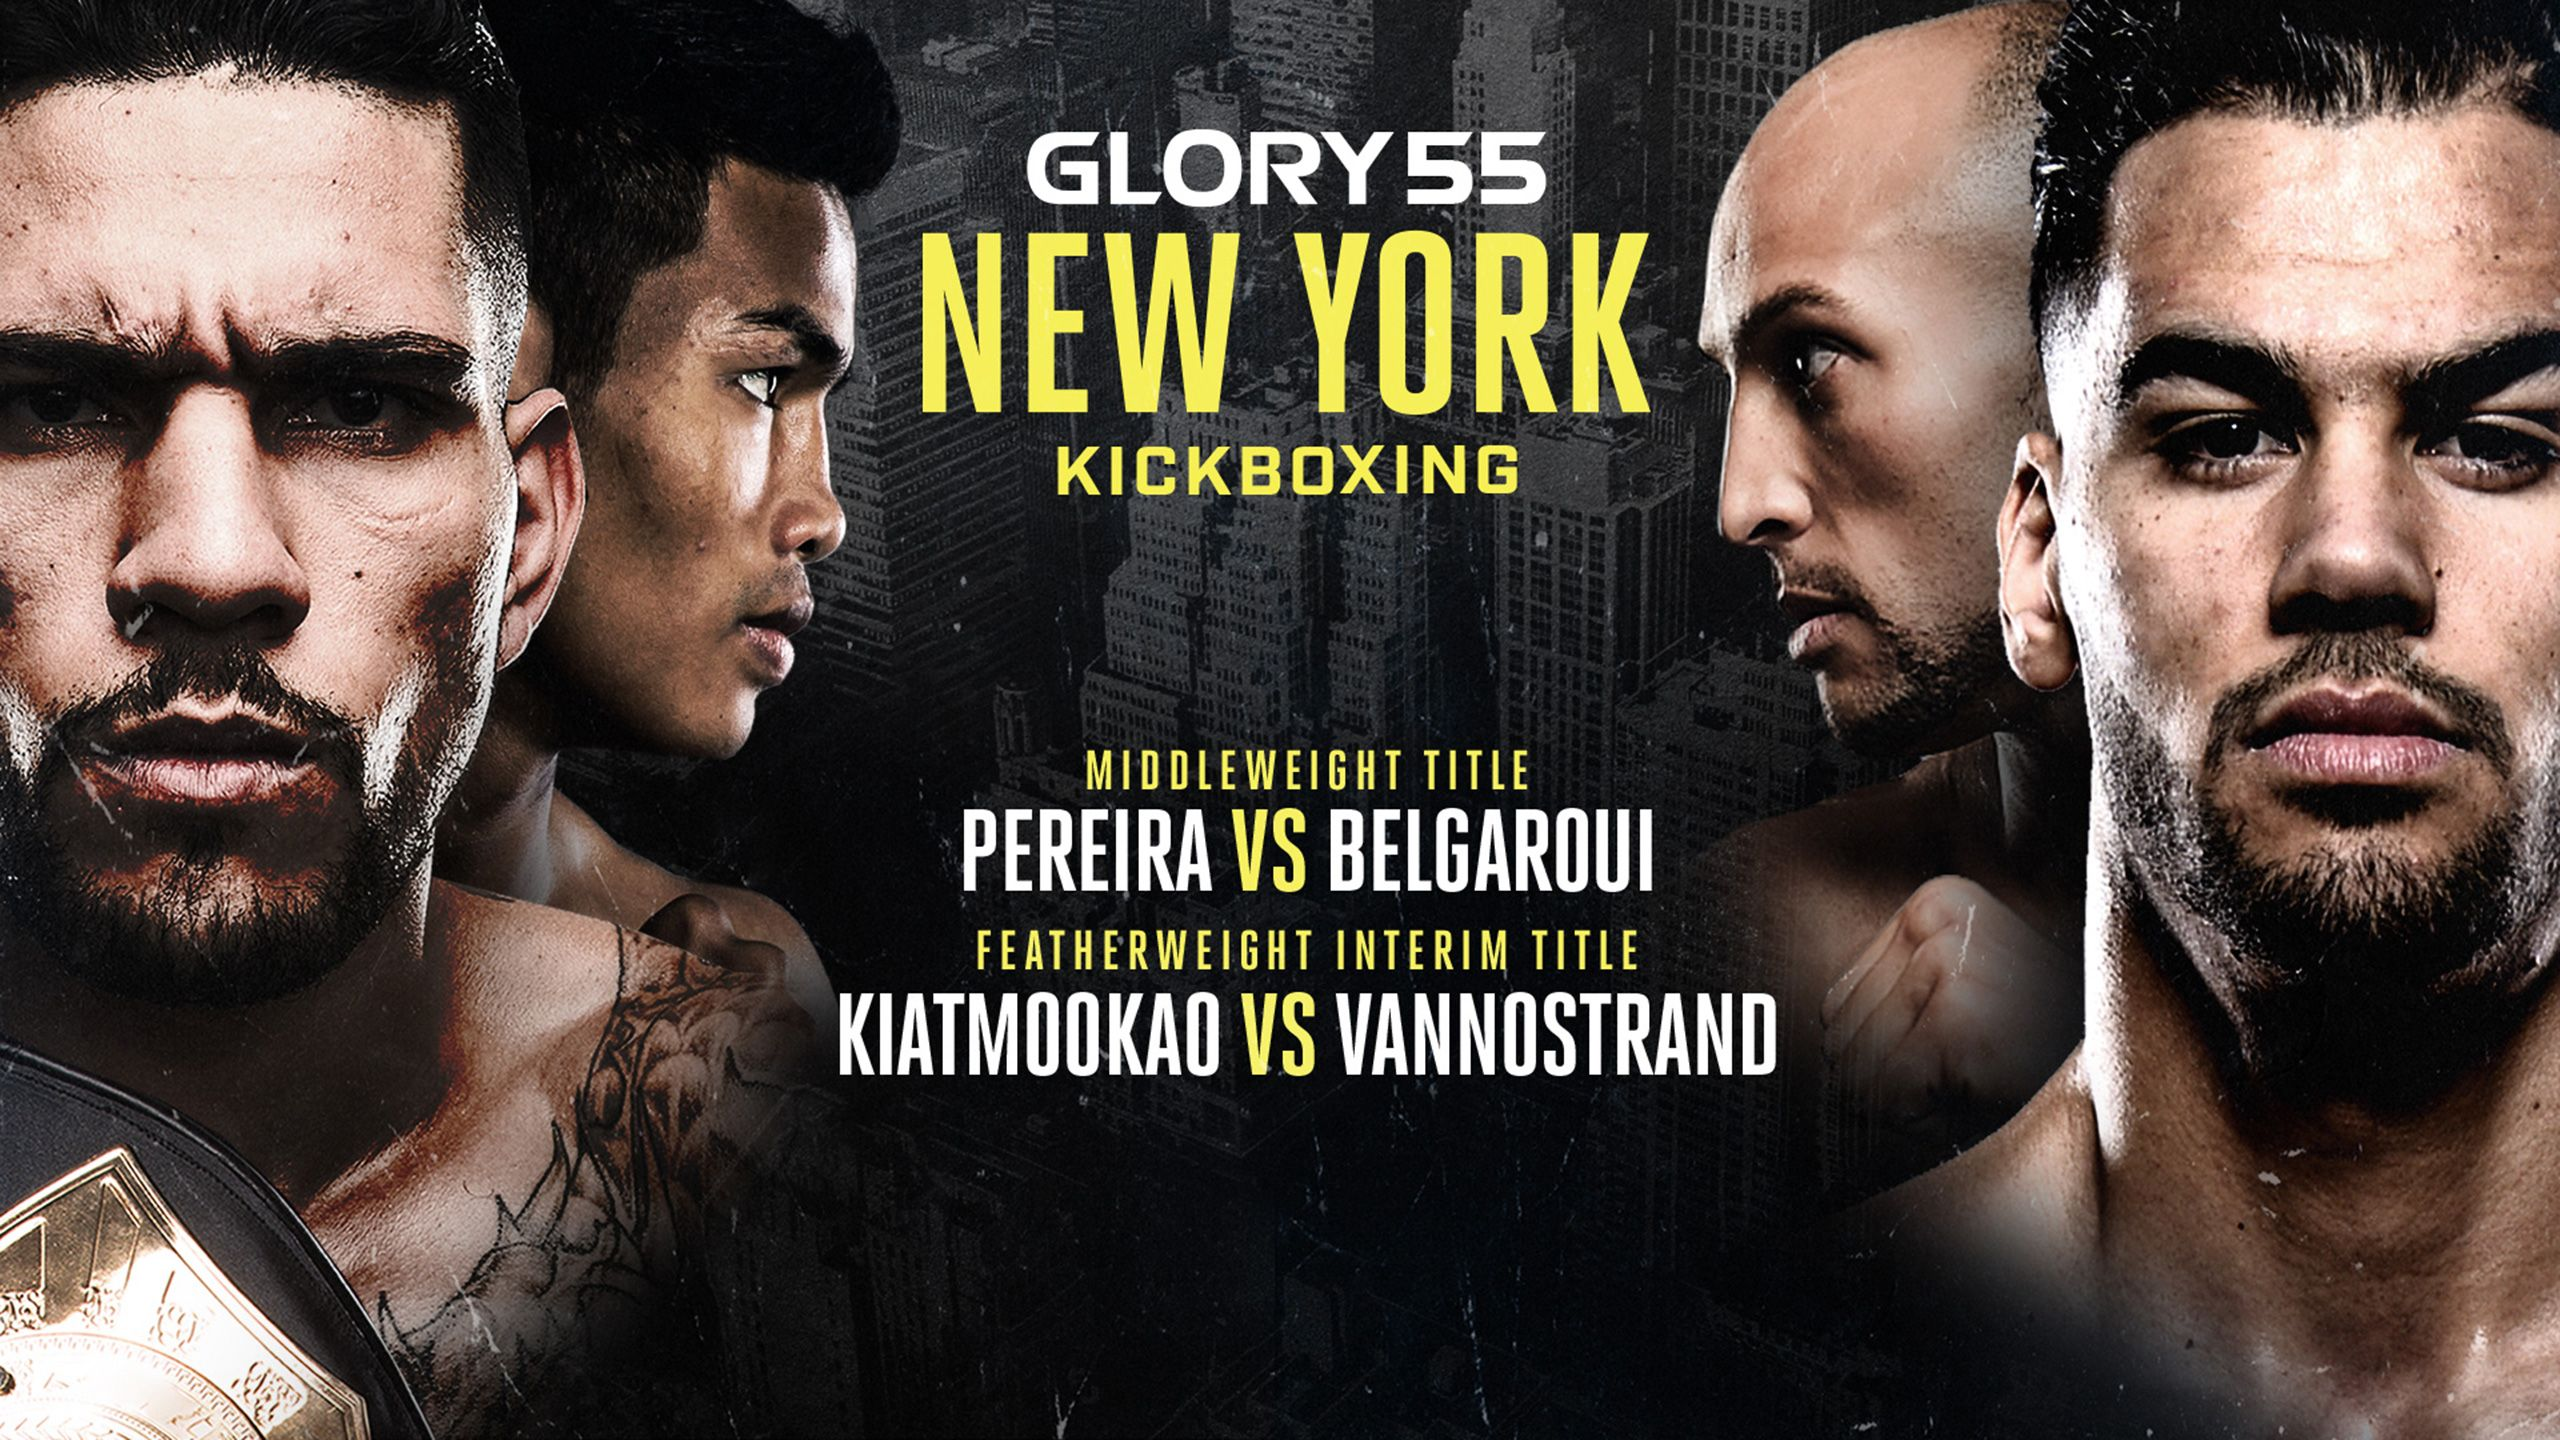 Kickboxing: GLORY 55